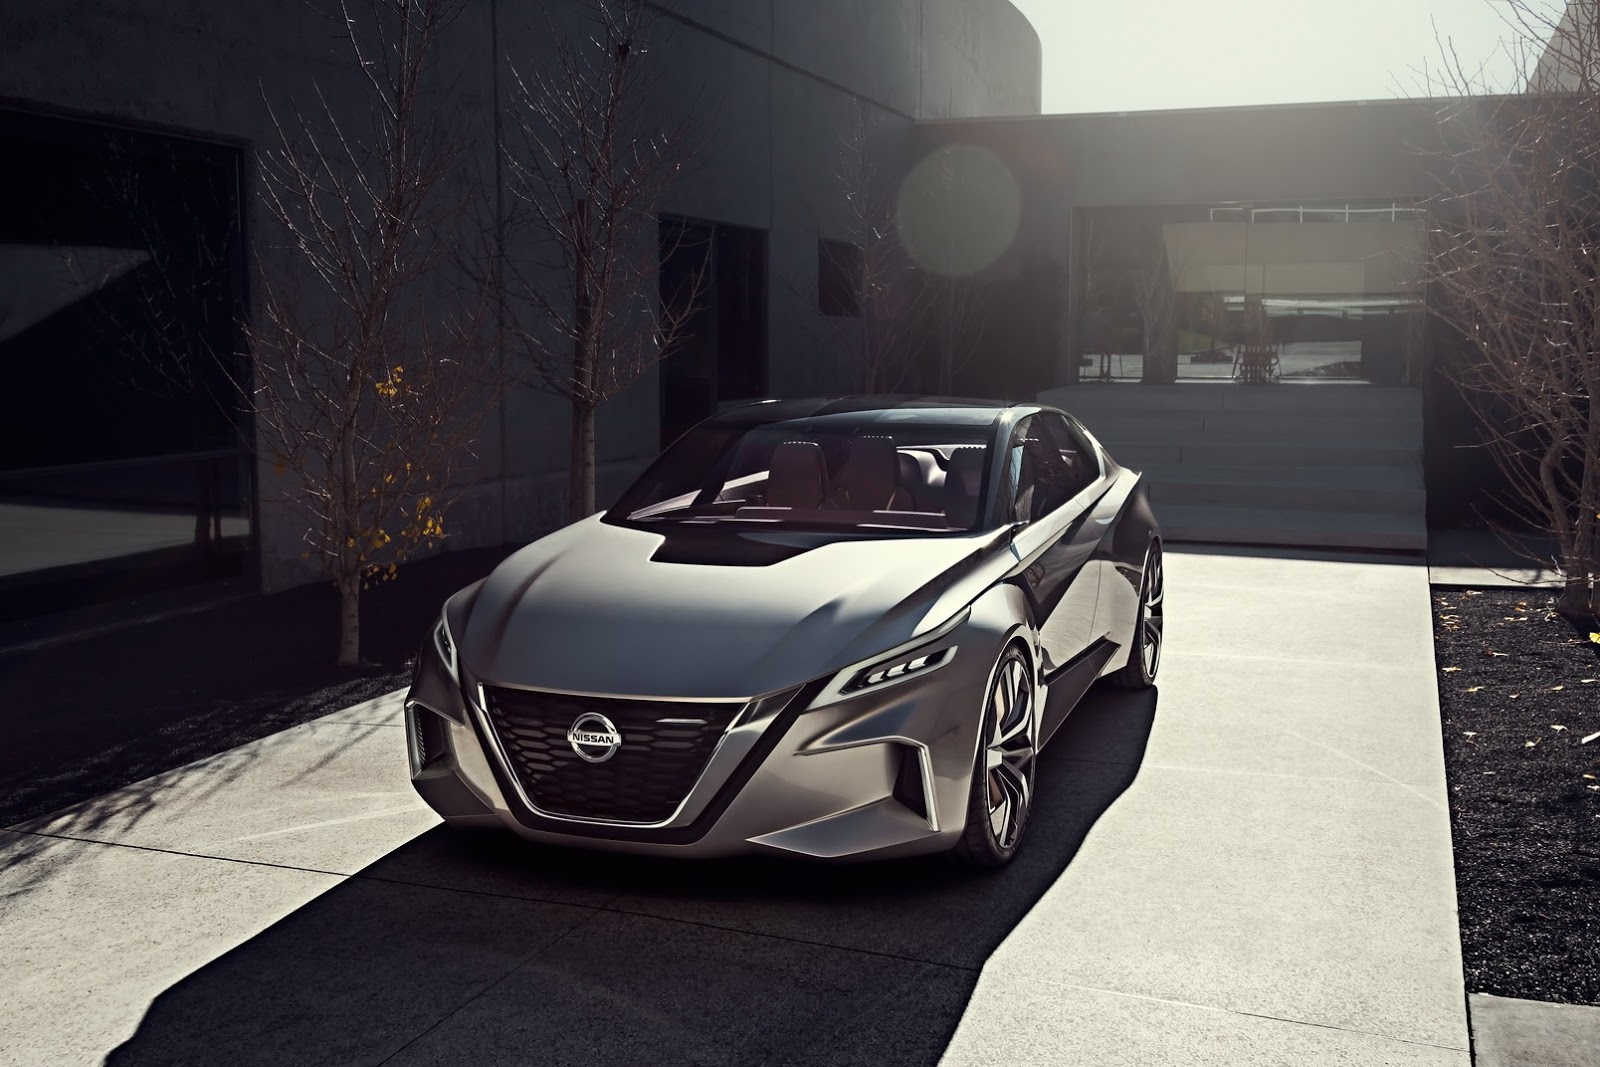 Nissan Vmotion 2.0 concept (4)